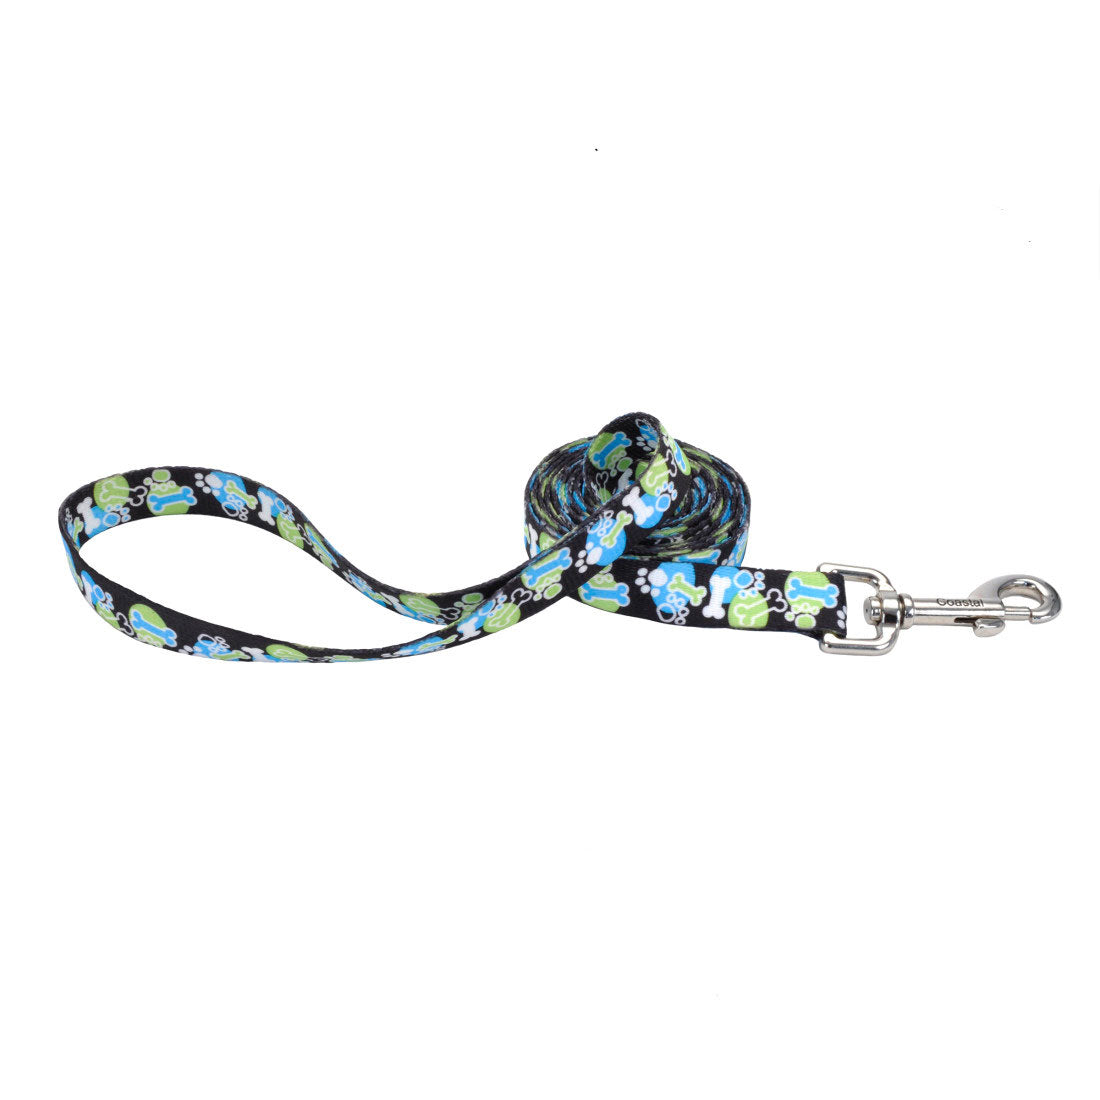 Coastal Styles Leash Outreach - Correas para Perros